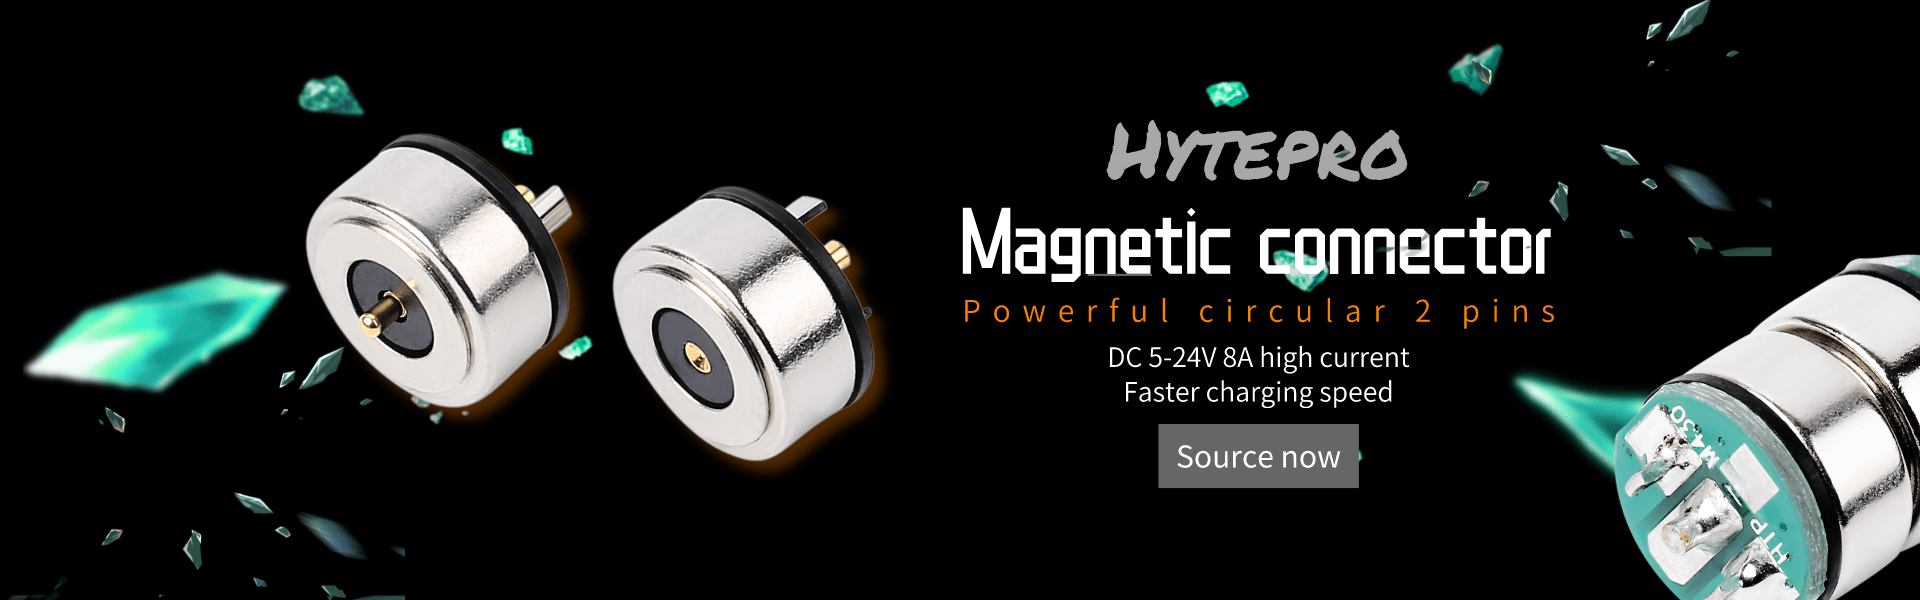 Professional Magnetic Connectors Manufacturer - HytePro